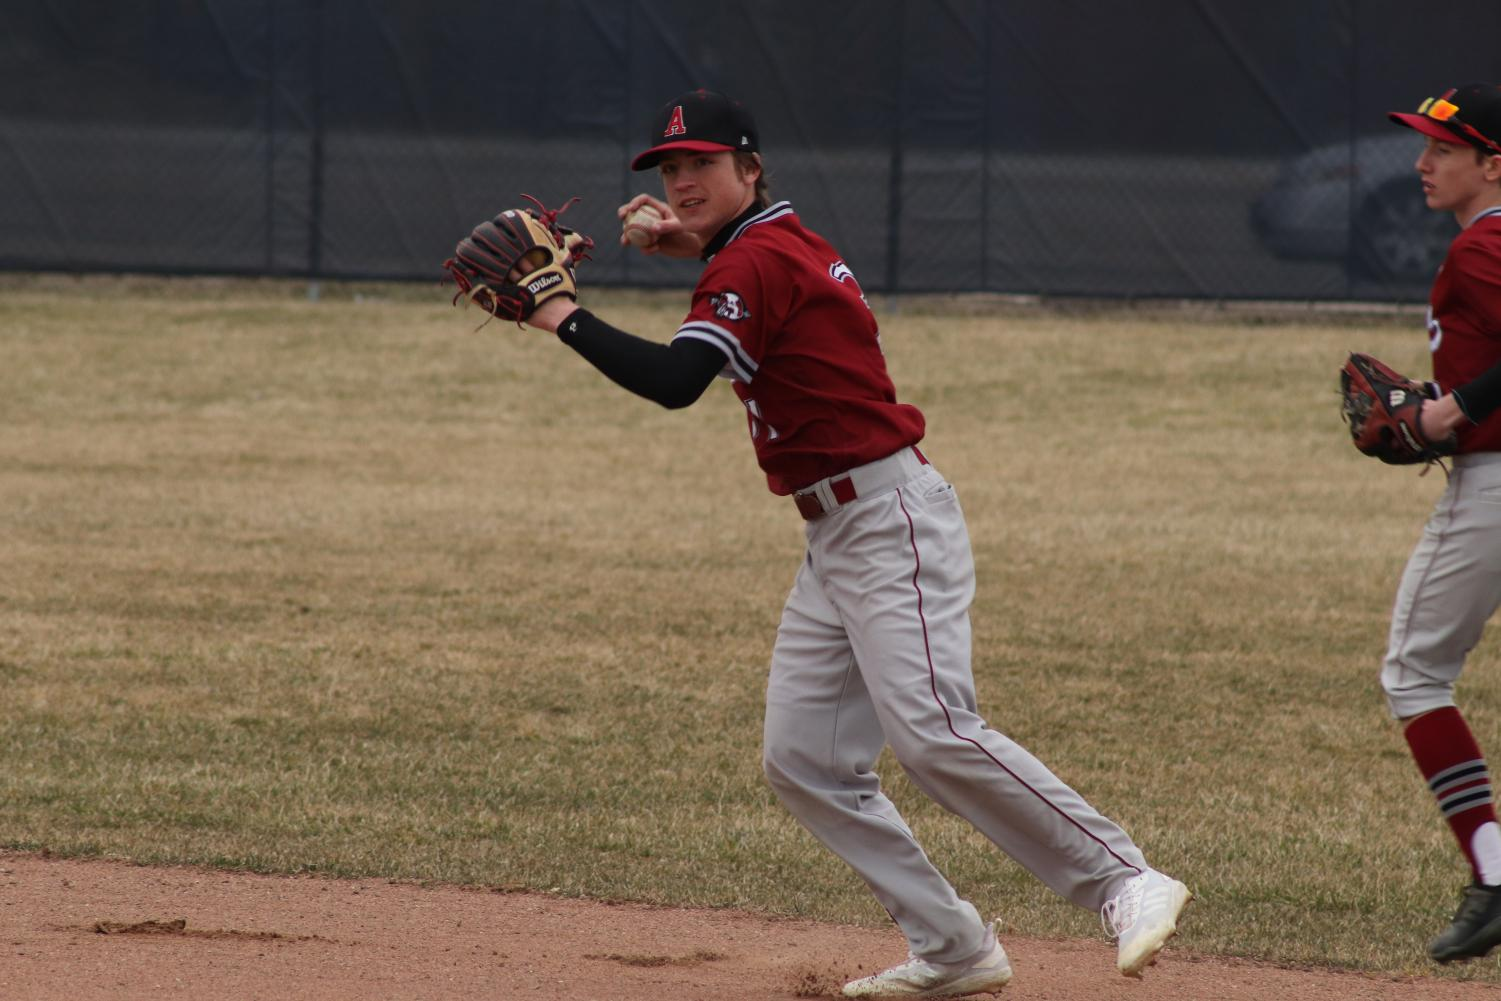 Sophomore Varsity Baseball player Ethan Andrews getting ready to throw the ball to get another out.